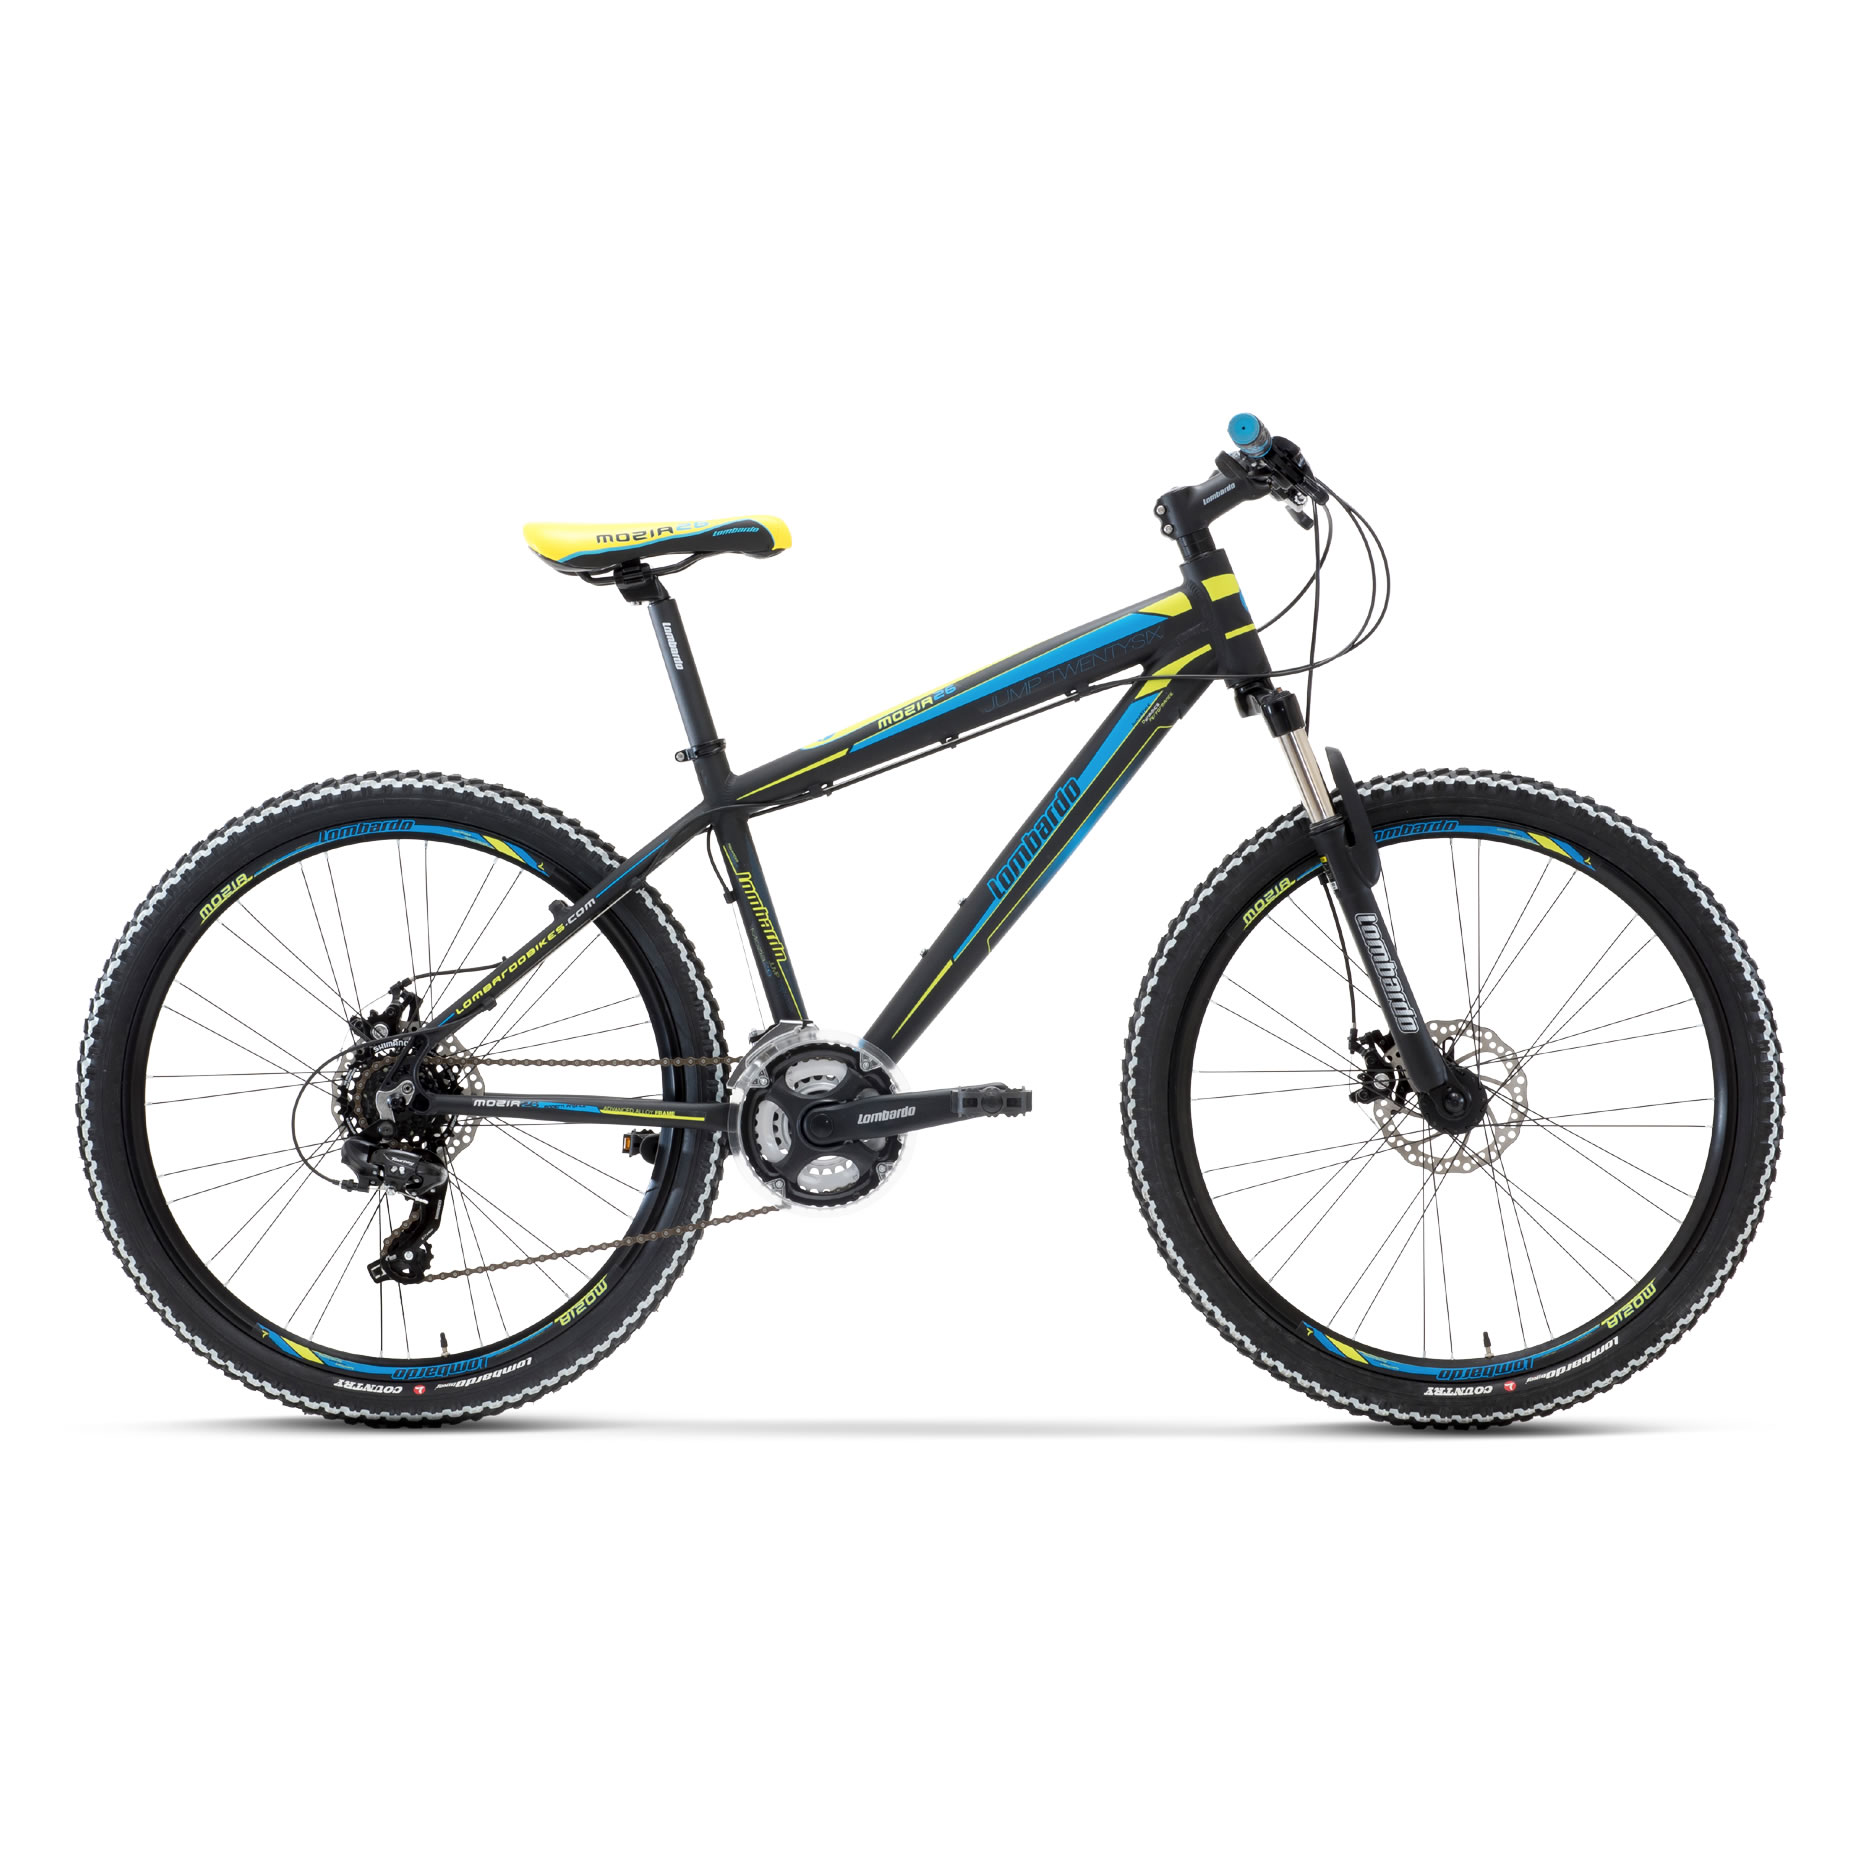 Mozia 26 Nero Blu Verde Mountain bike - Lombardo Bikes 2018(Anche in comode rate)